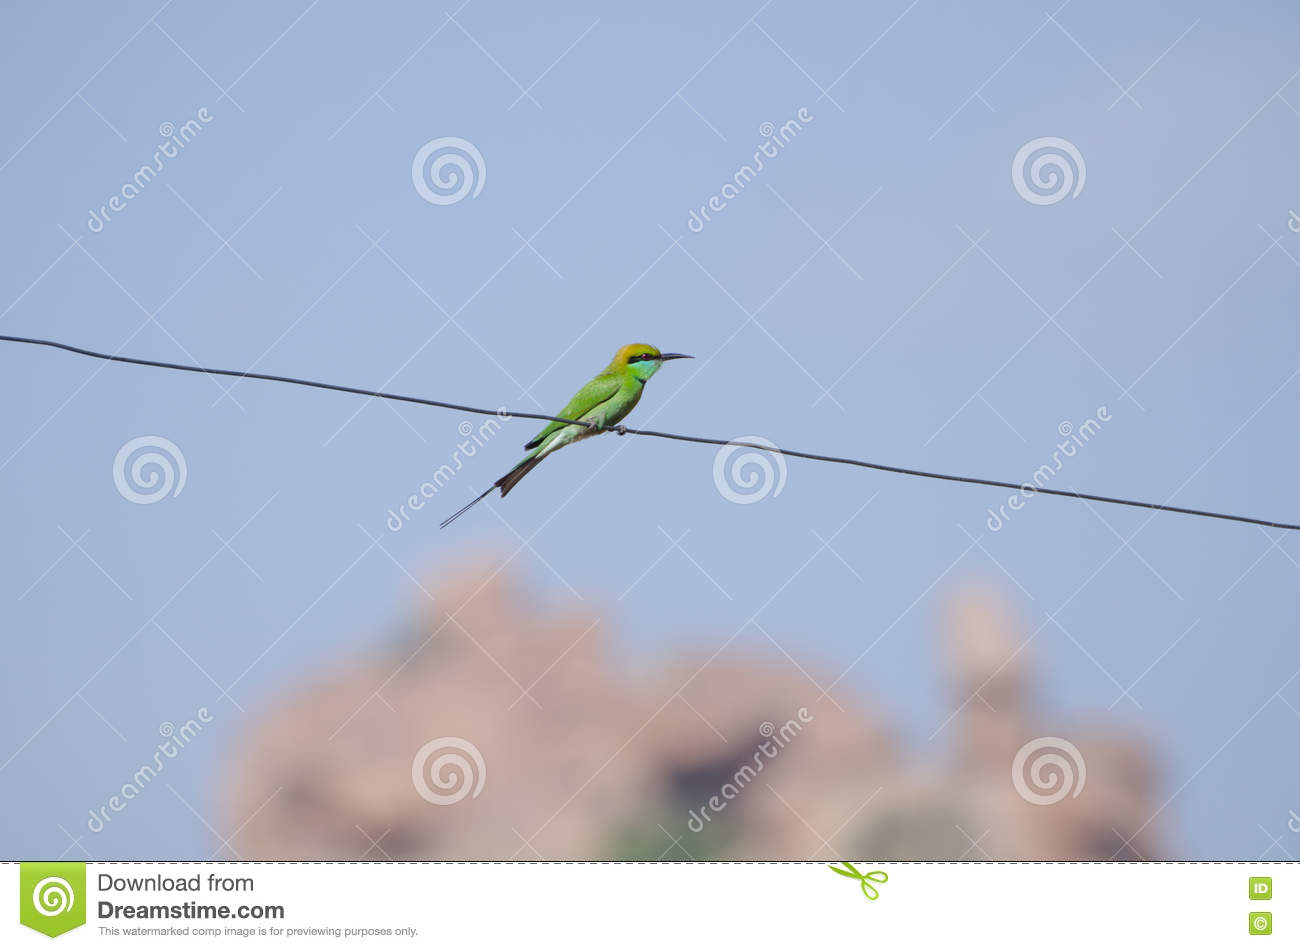 Green Bird Sitting On The Wire, India Stock Image - Image of waiting ...